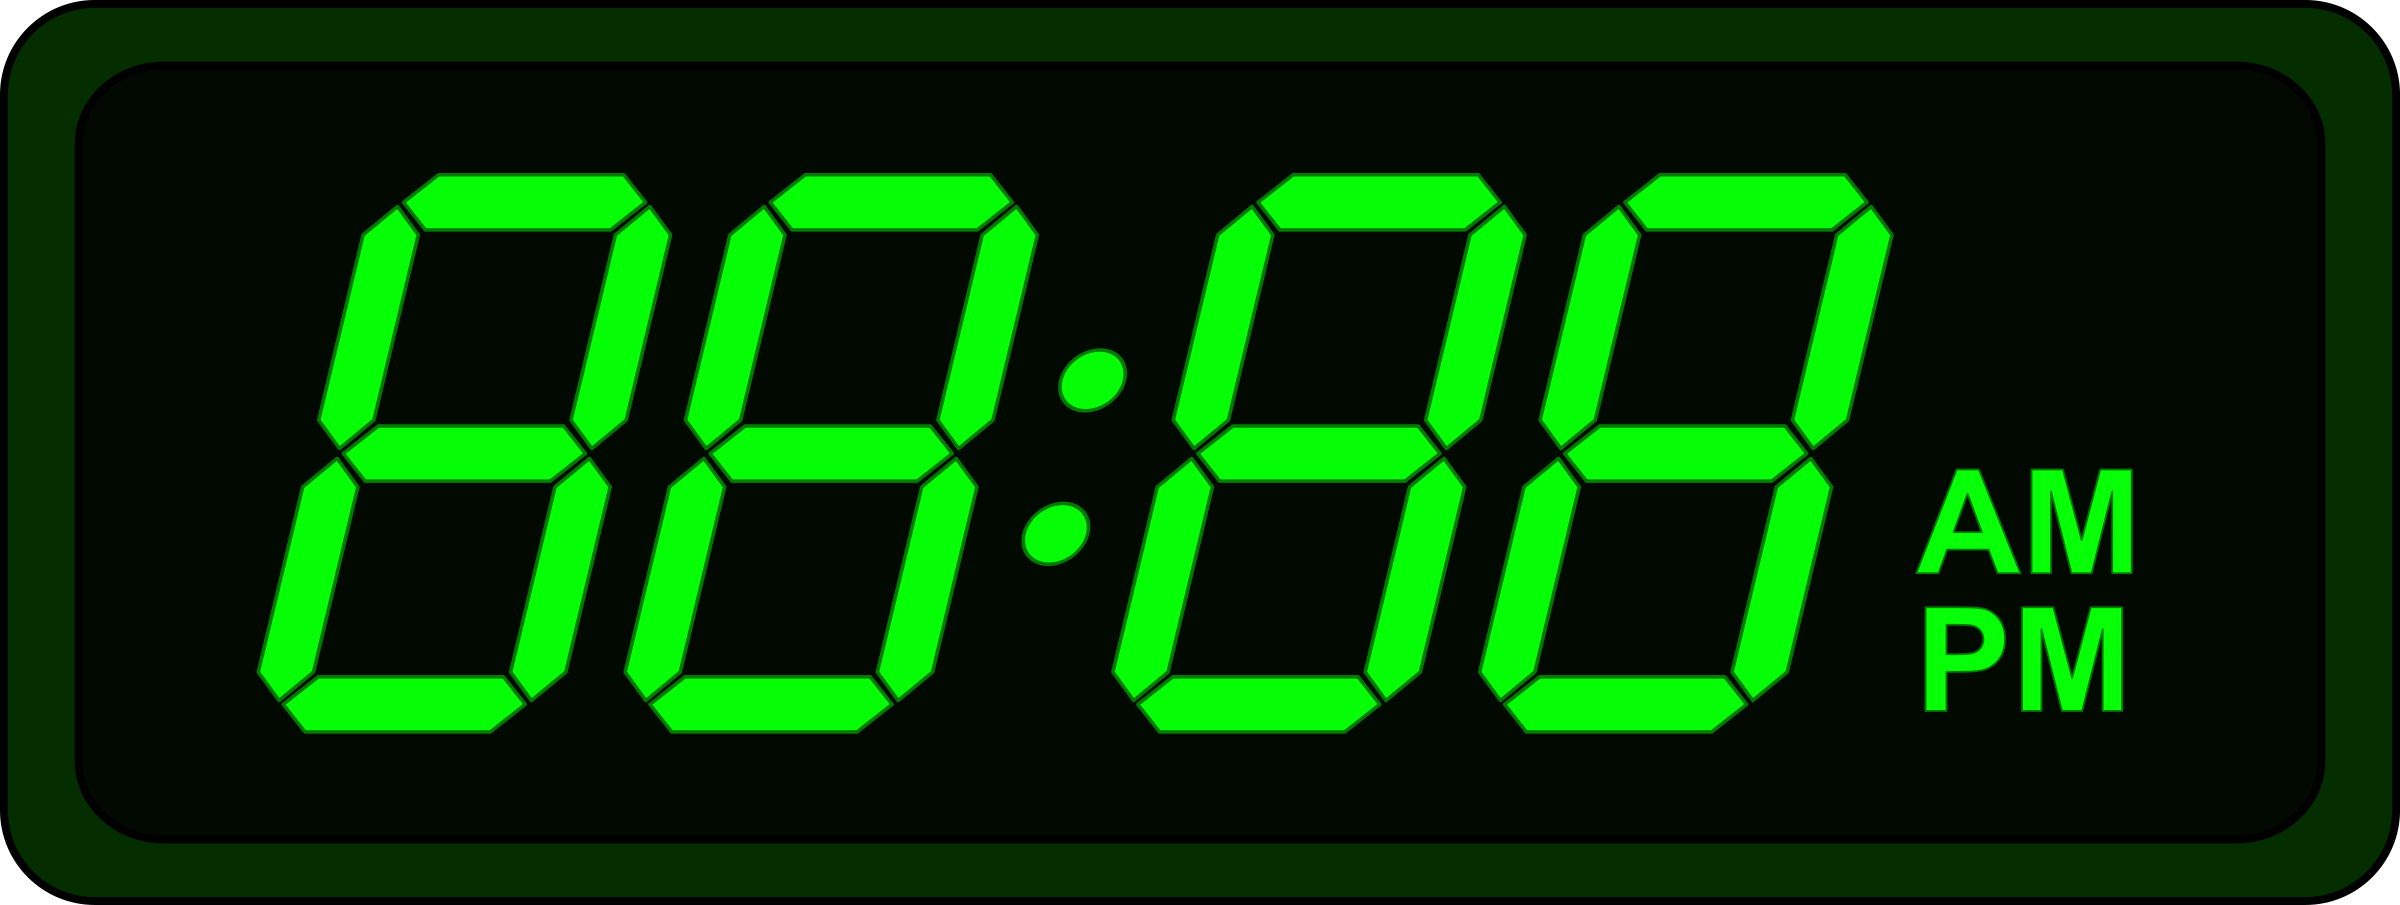 Clipart - Digital Clock